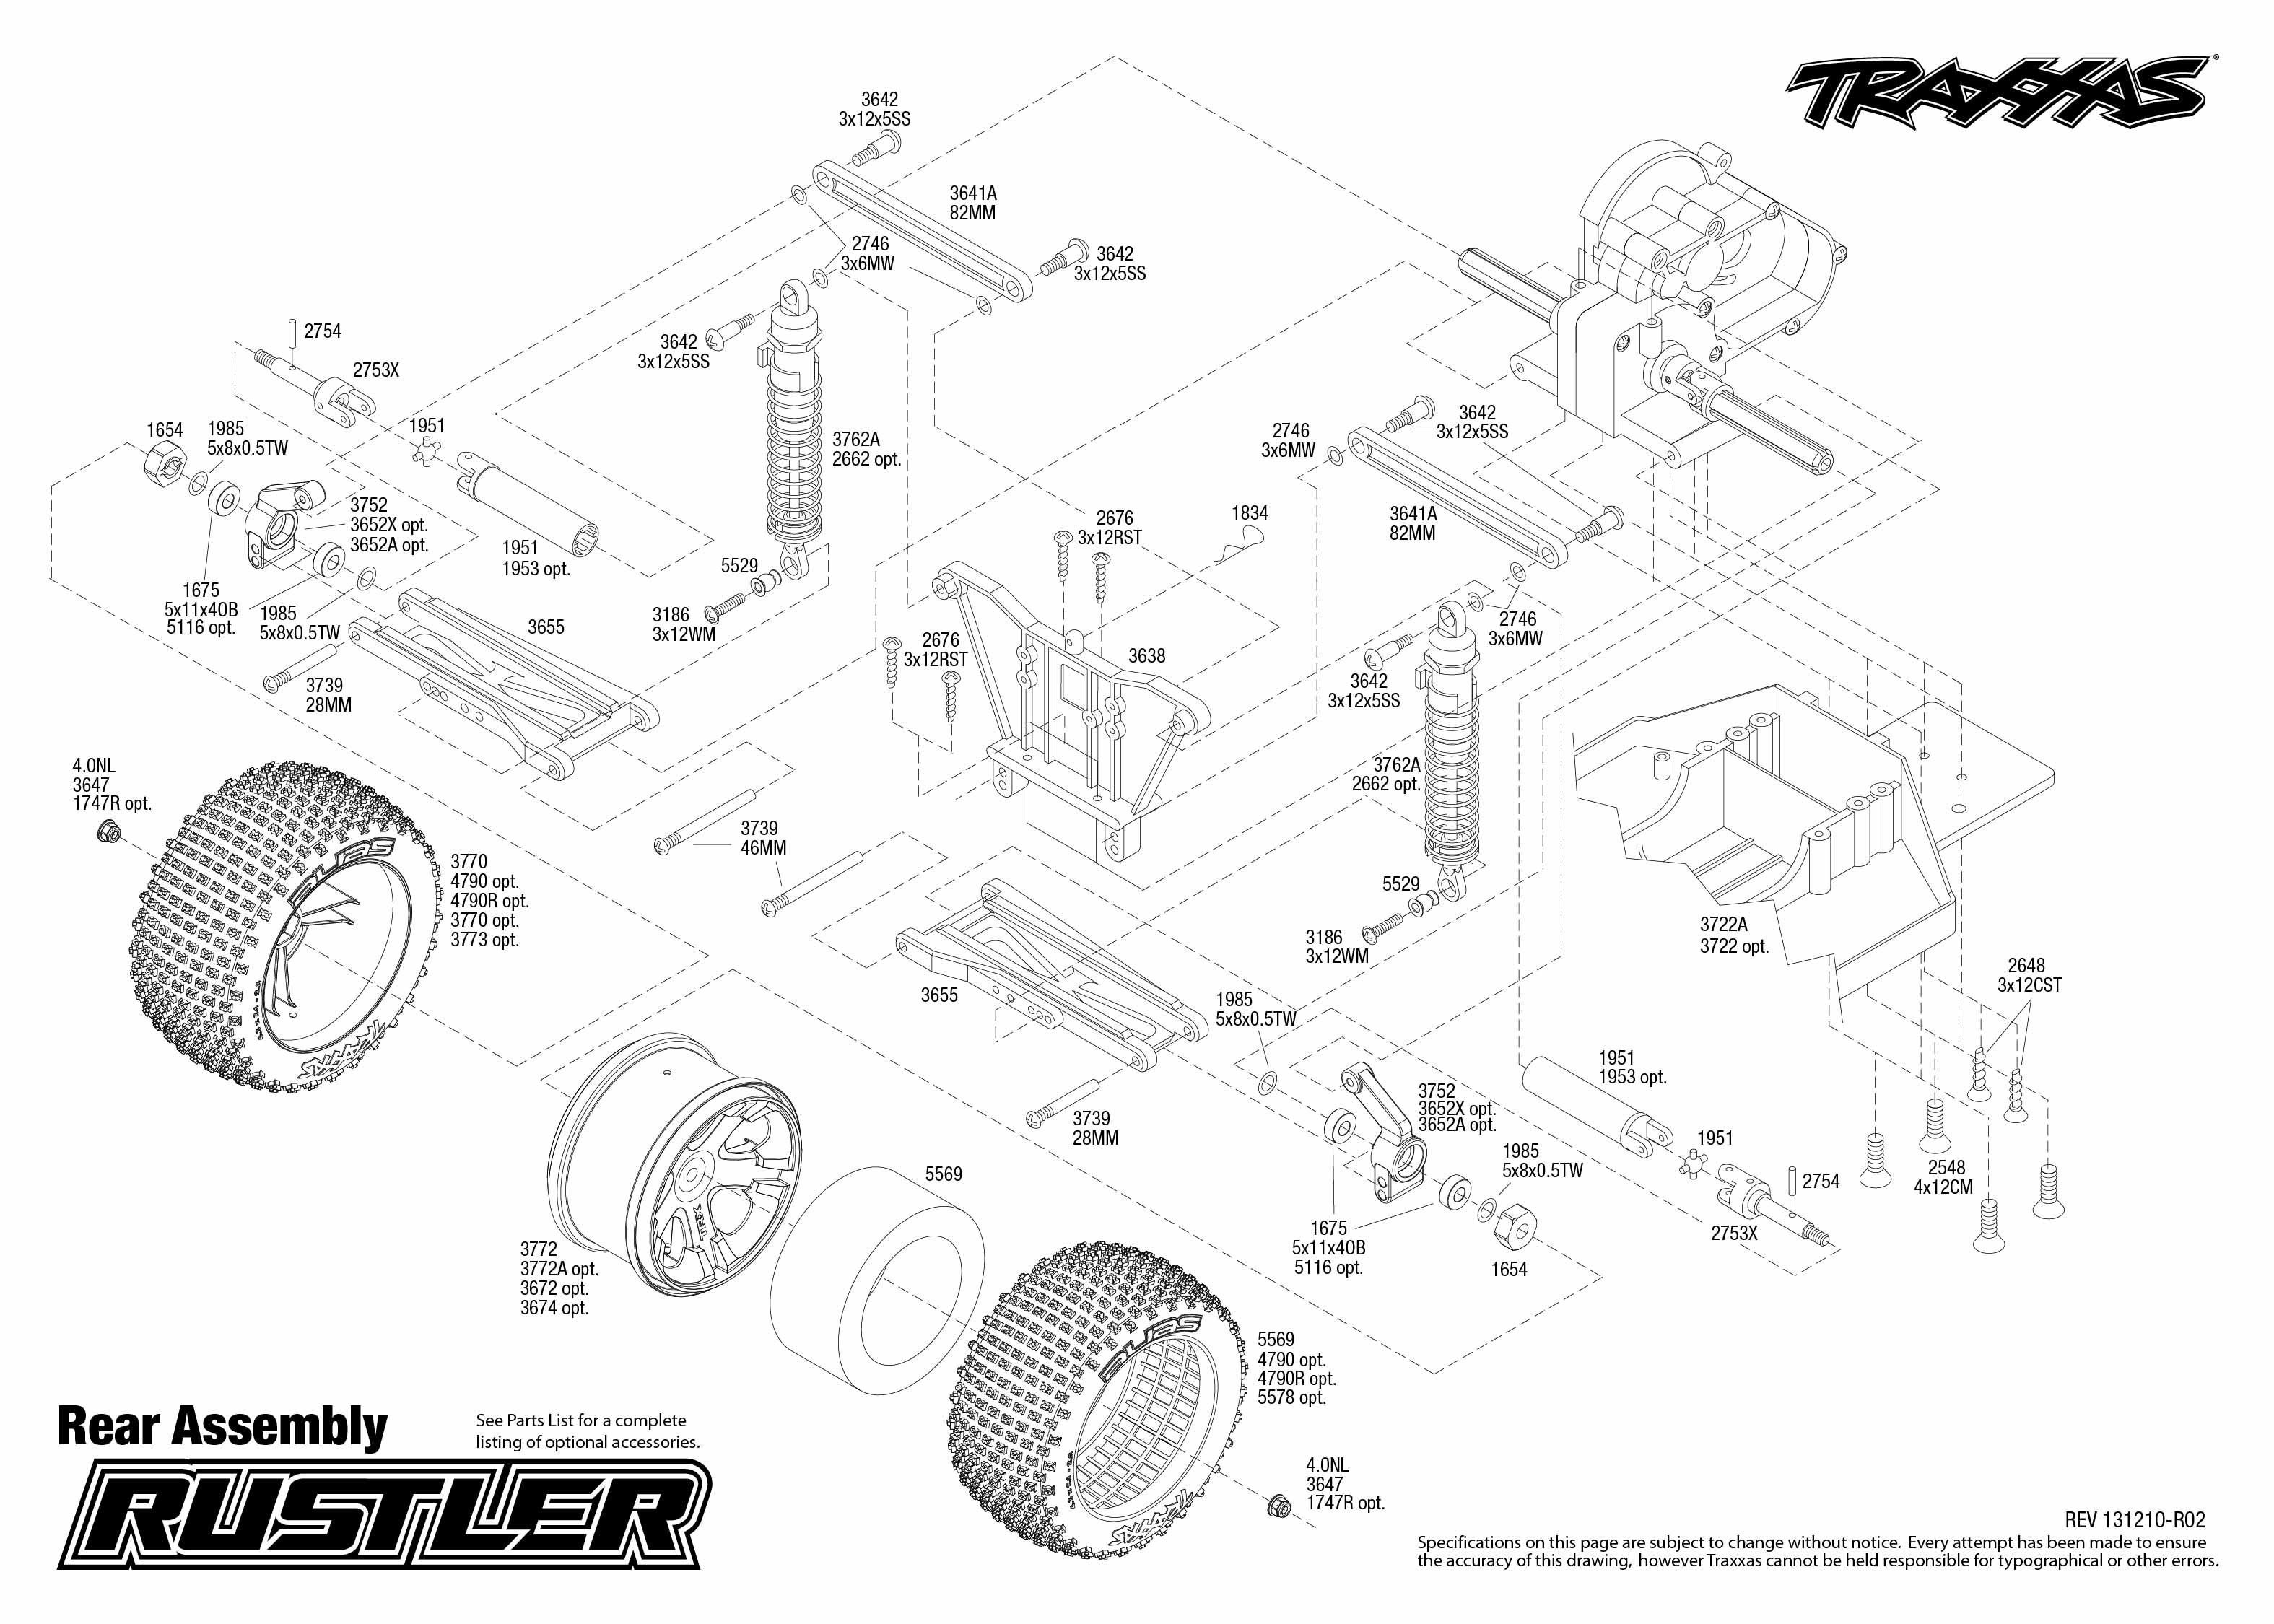 Traxxas Rustler Parts Diagram | Rustler 37054 Rear Assembly Traxxas